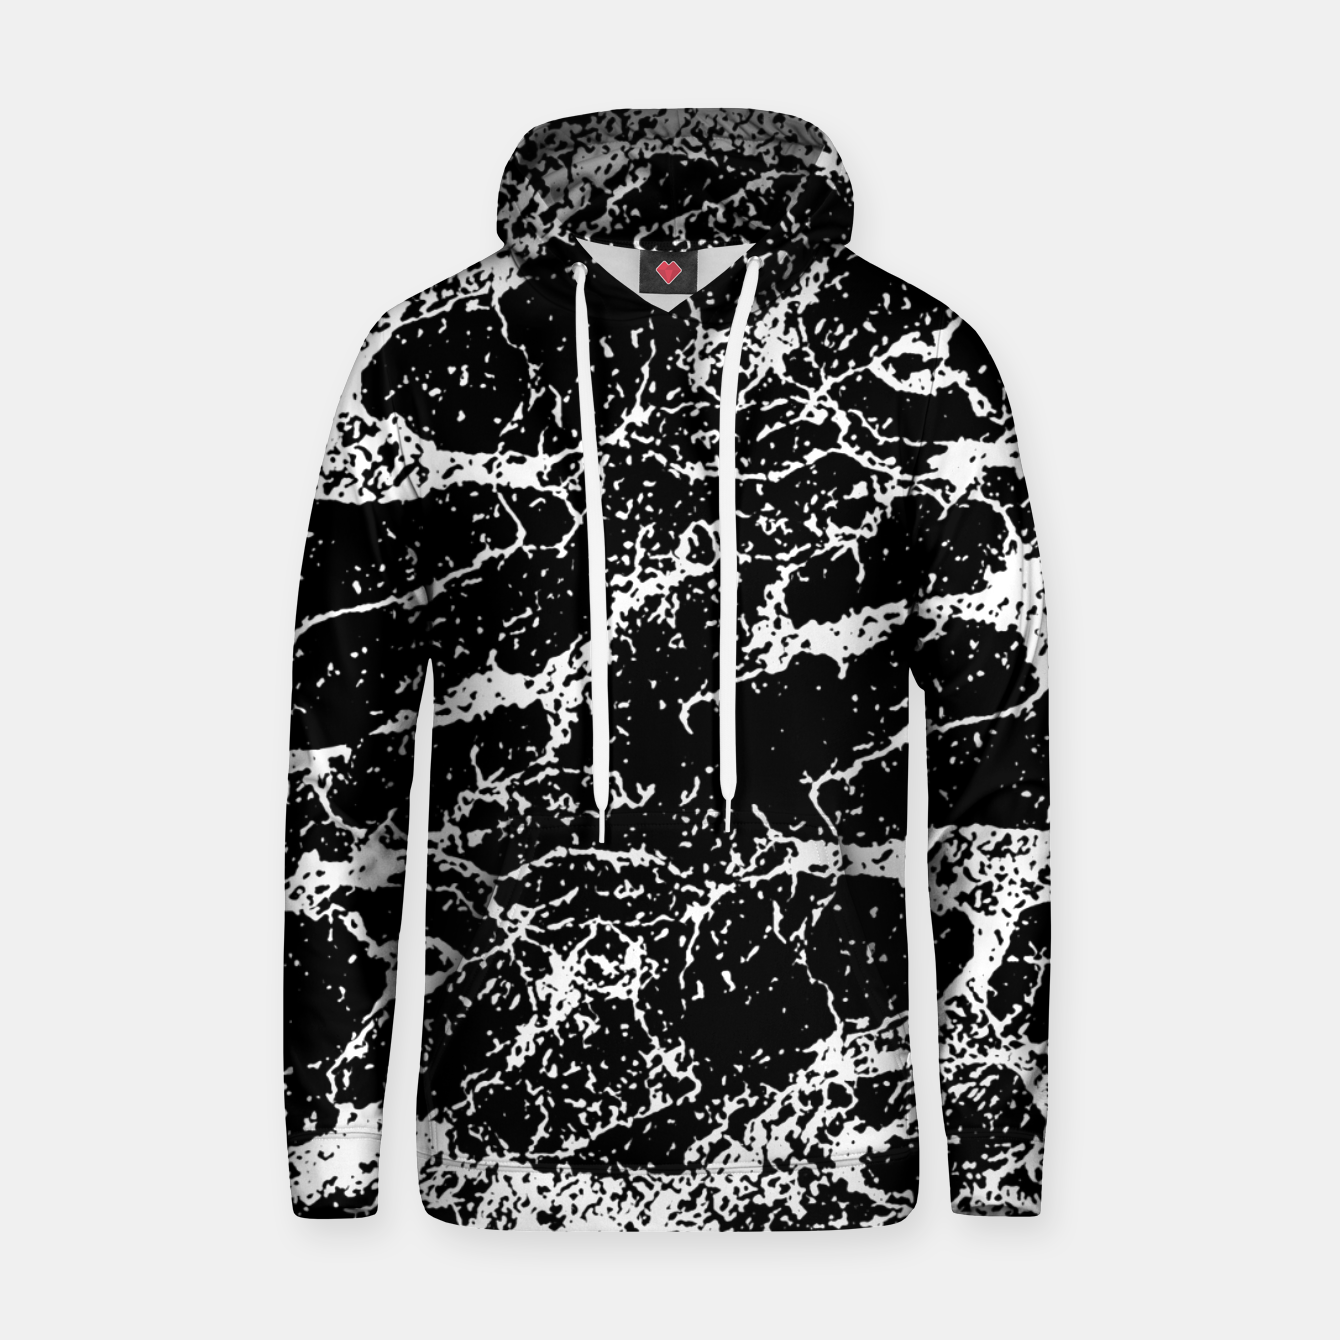 Image de Black and White Abstract Textured Print Hoodie - Live Heroes